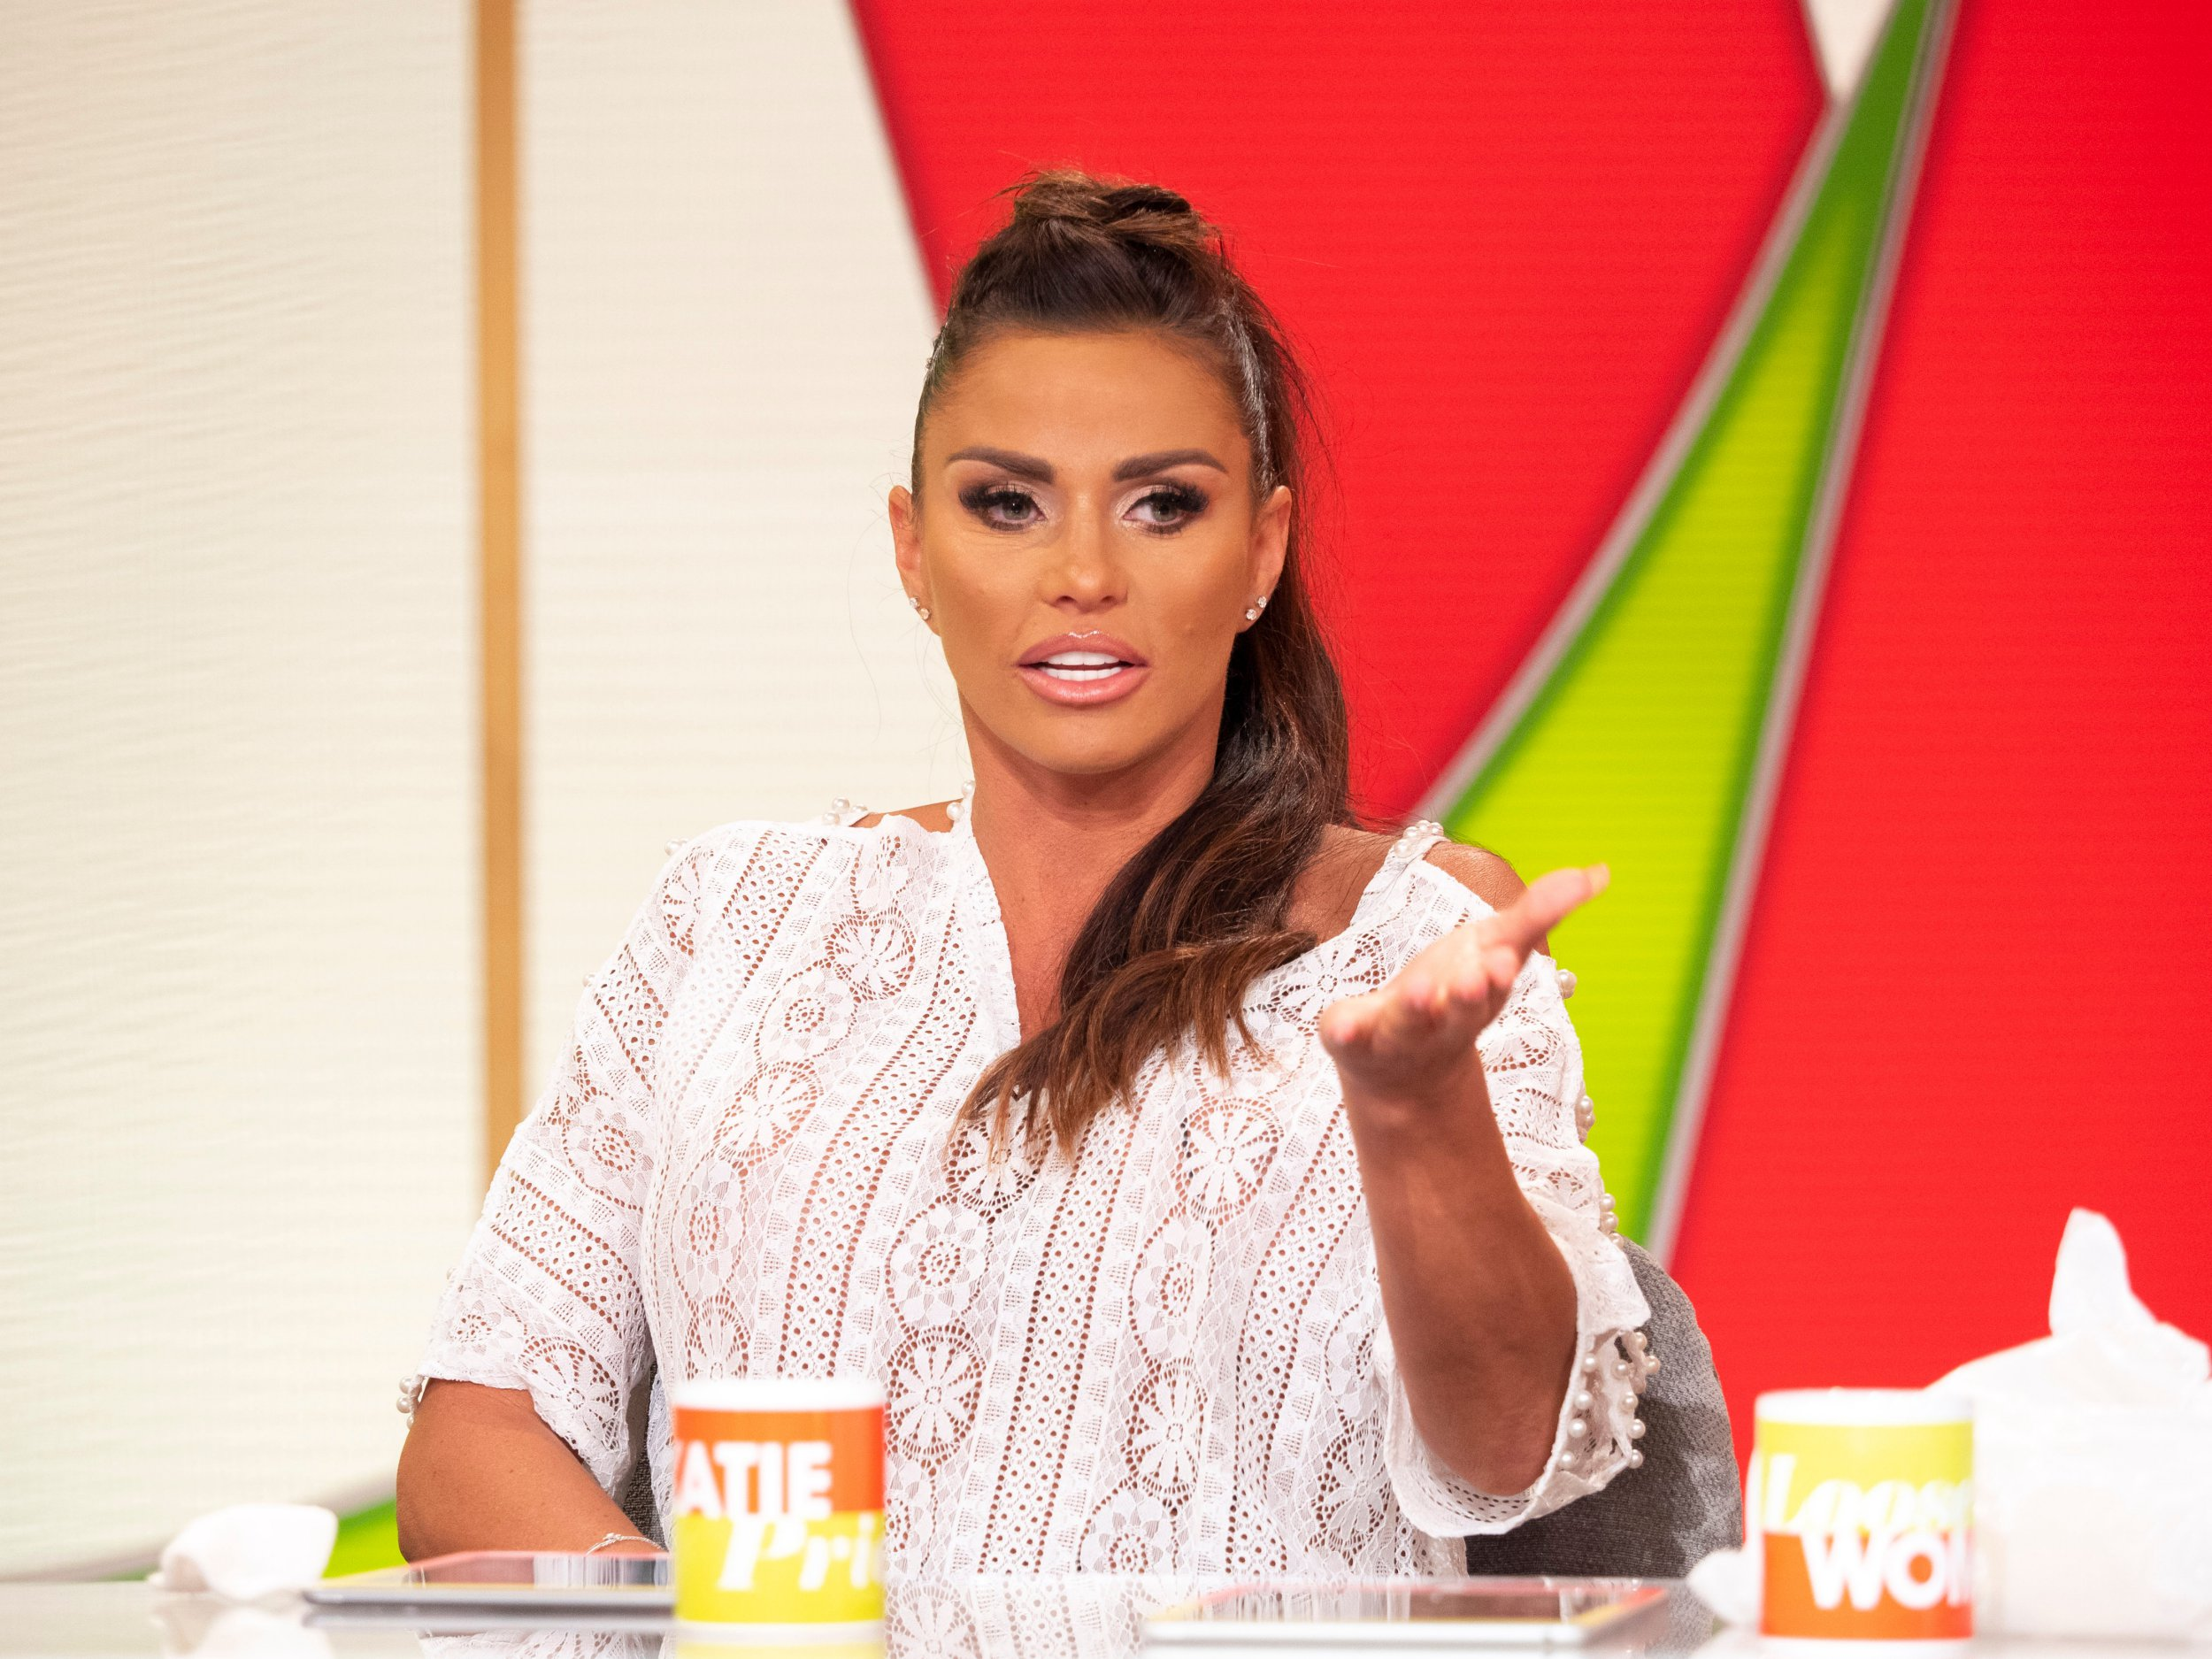 Editorial use only Mandatory Credit: Photo by Ken McKay/ITV/REX/Shutterstock (9766456di) Katie Price 'Loose Women' TV show, London, UK - 20 Jul 2018